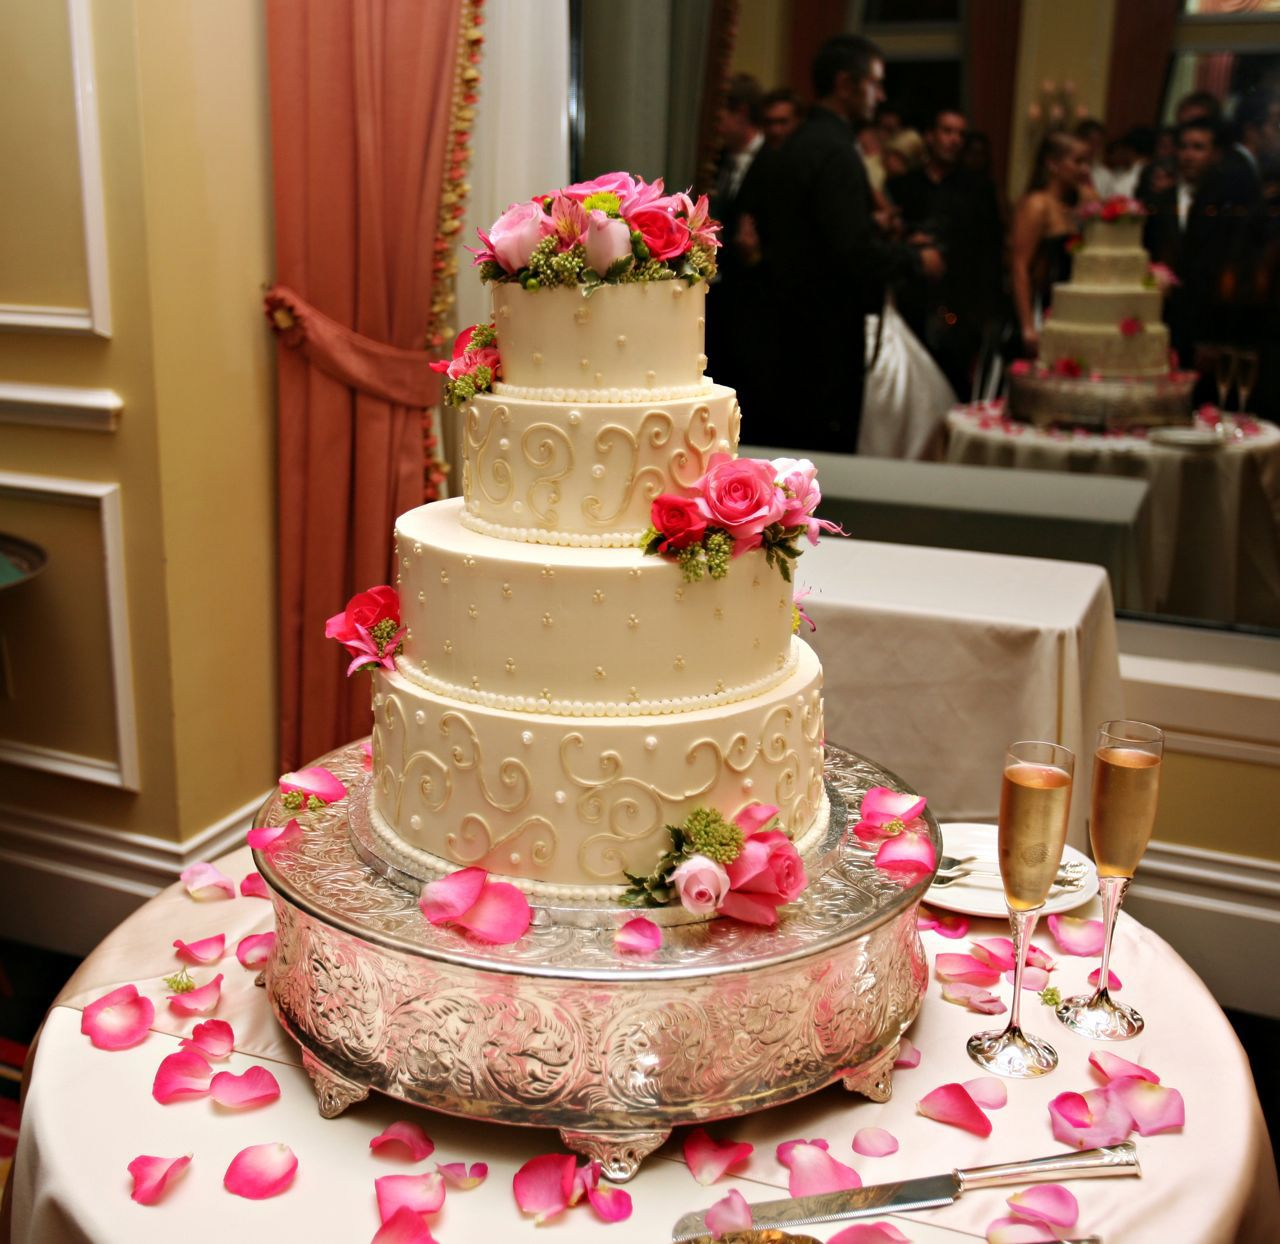 Fun Wedding Cake Ideas: Wedding Cakes Images Pictures Idea Wallpapers